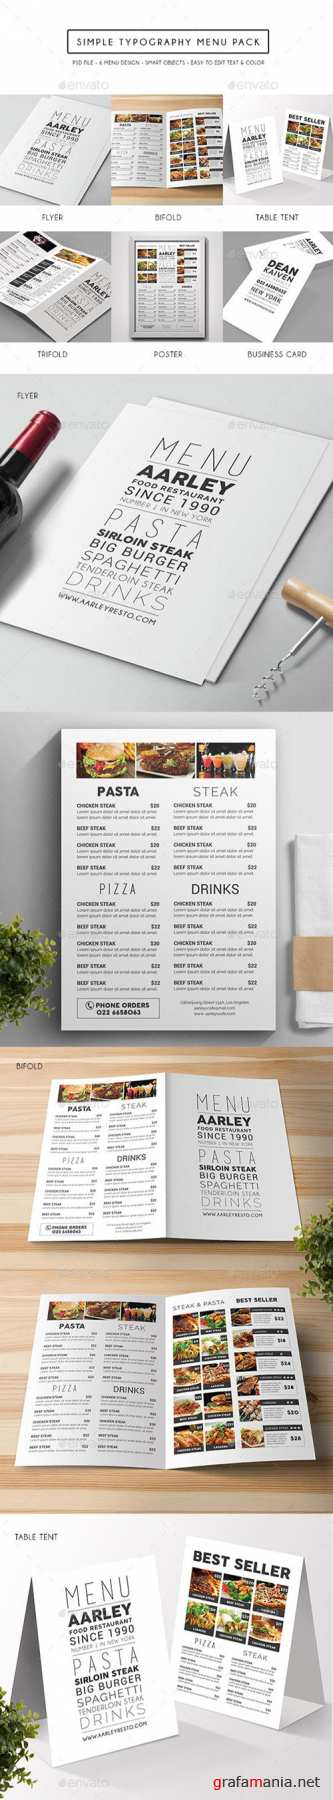 GR - Simple Typography Menu Pack 15103580